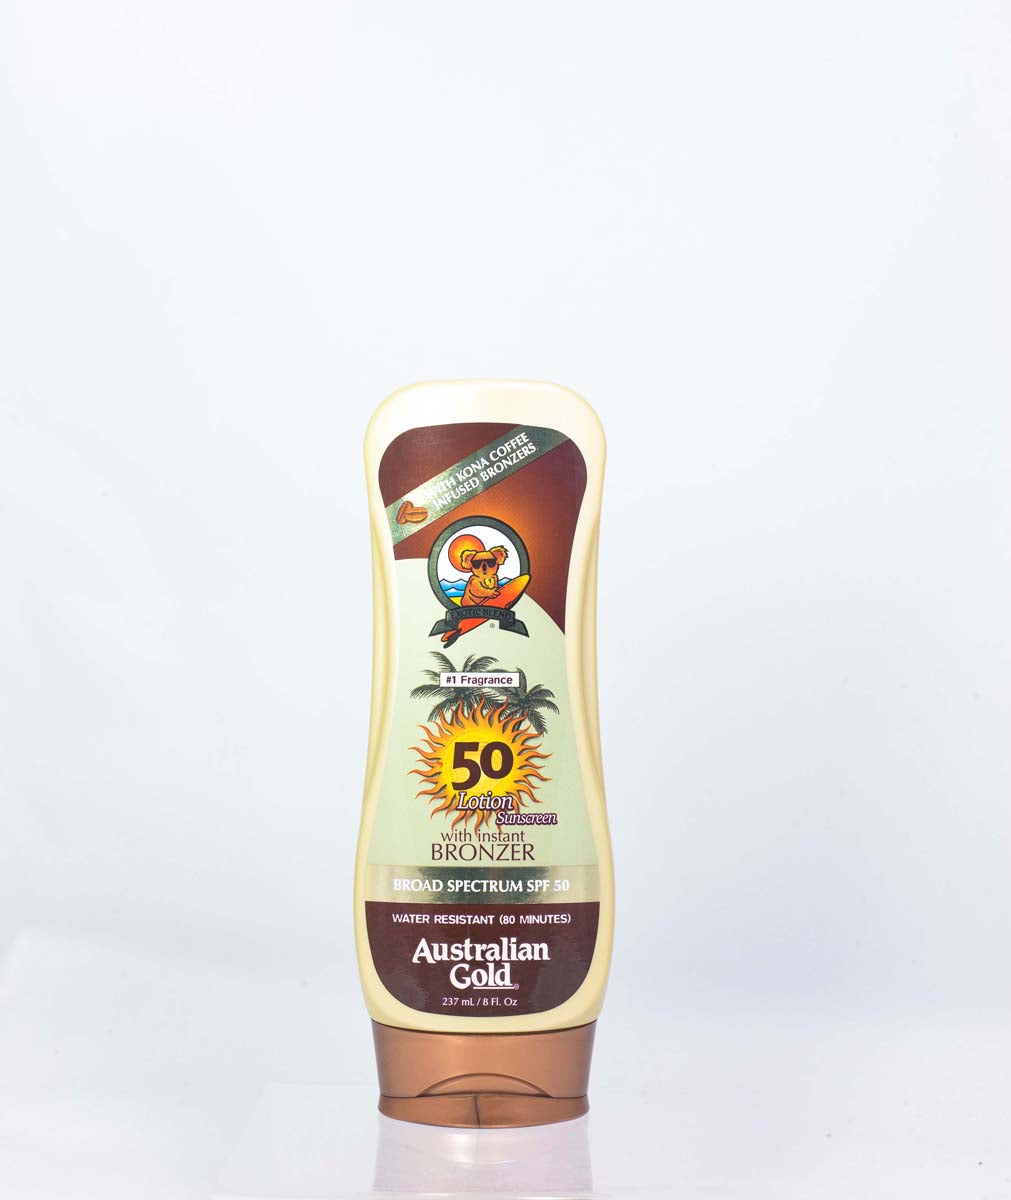 Australian Gold Spf 50 Moisture Max Sunscreen Lotion With Kona Bronzers 8 oz